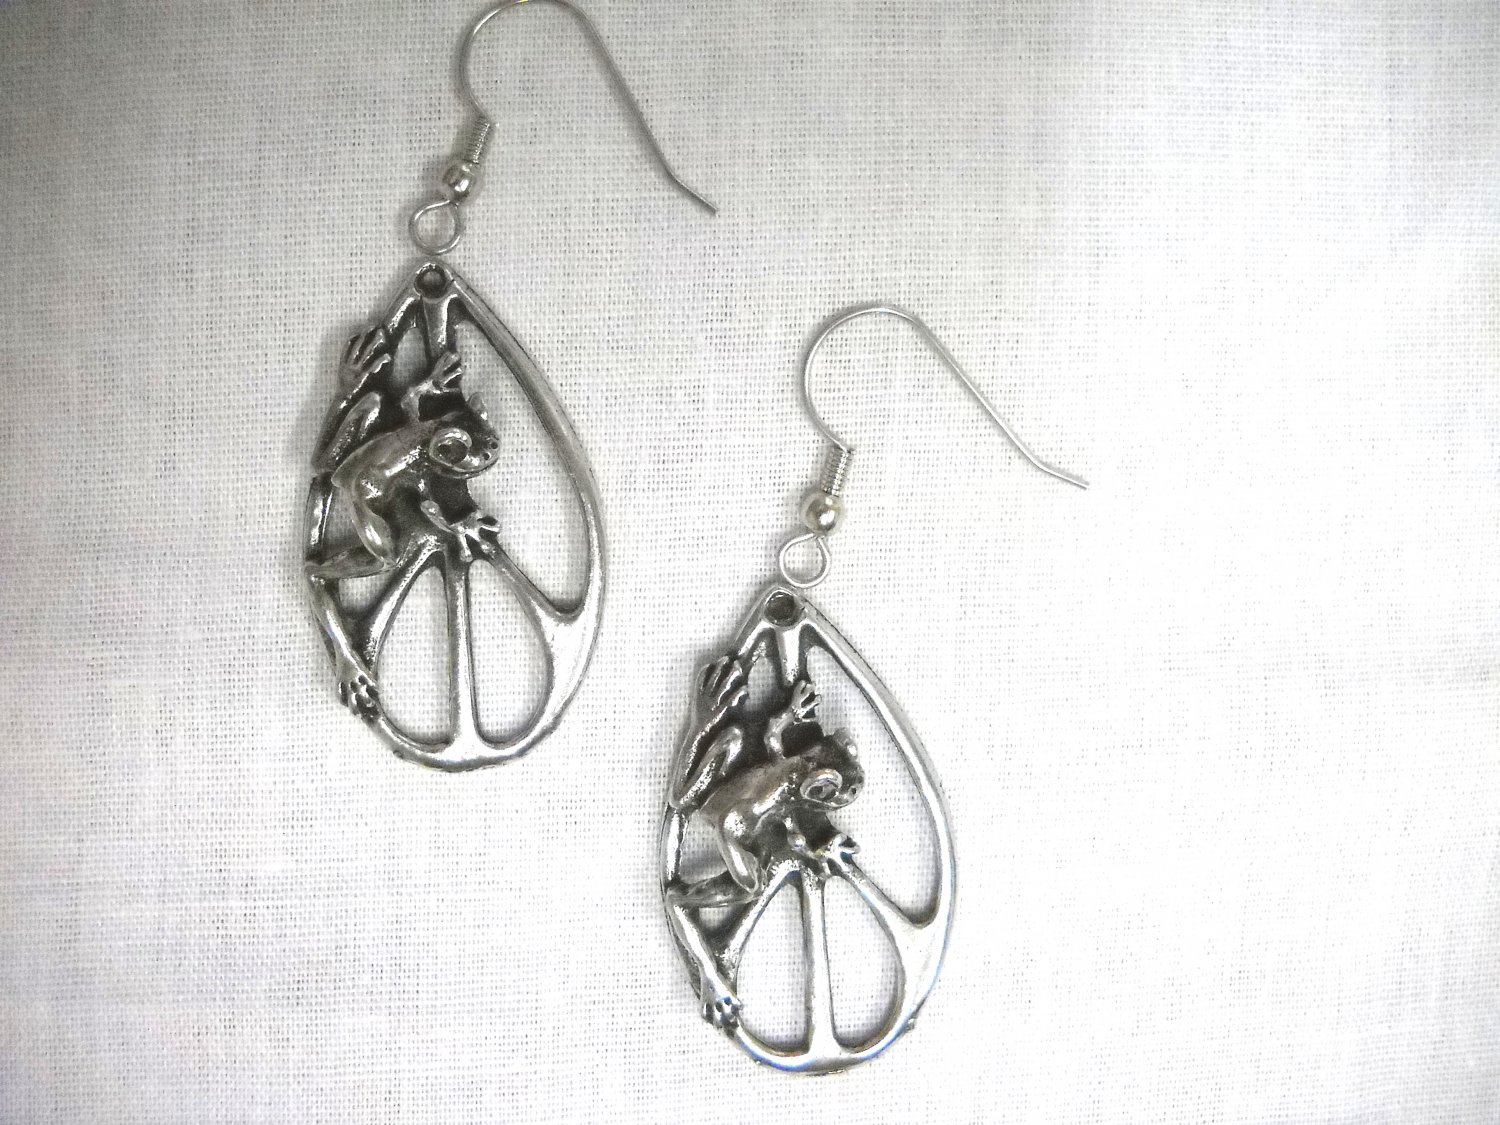 NEW TREE FROG ON DROPLET PEACE SIGN PEWTER PENDANT SIZE PAIR OF EARRINGS PEACE FROGS